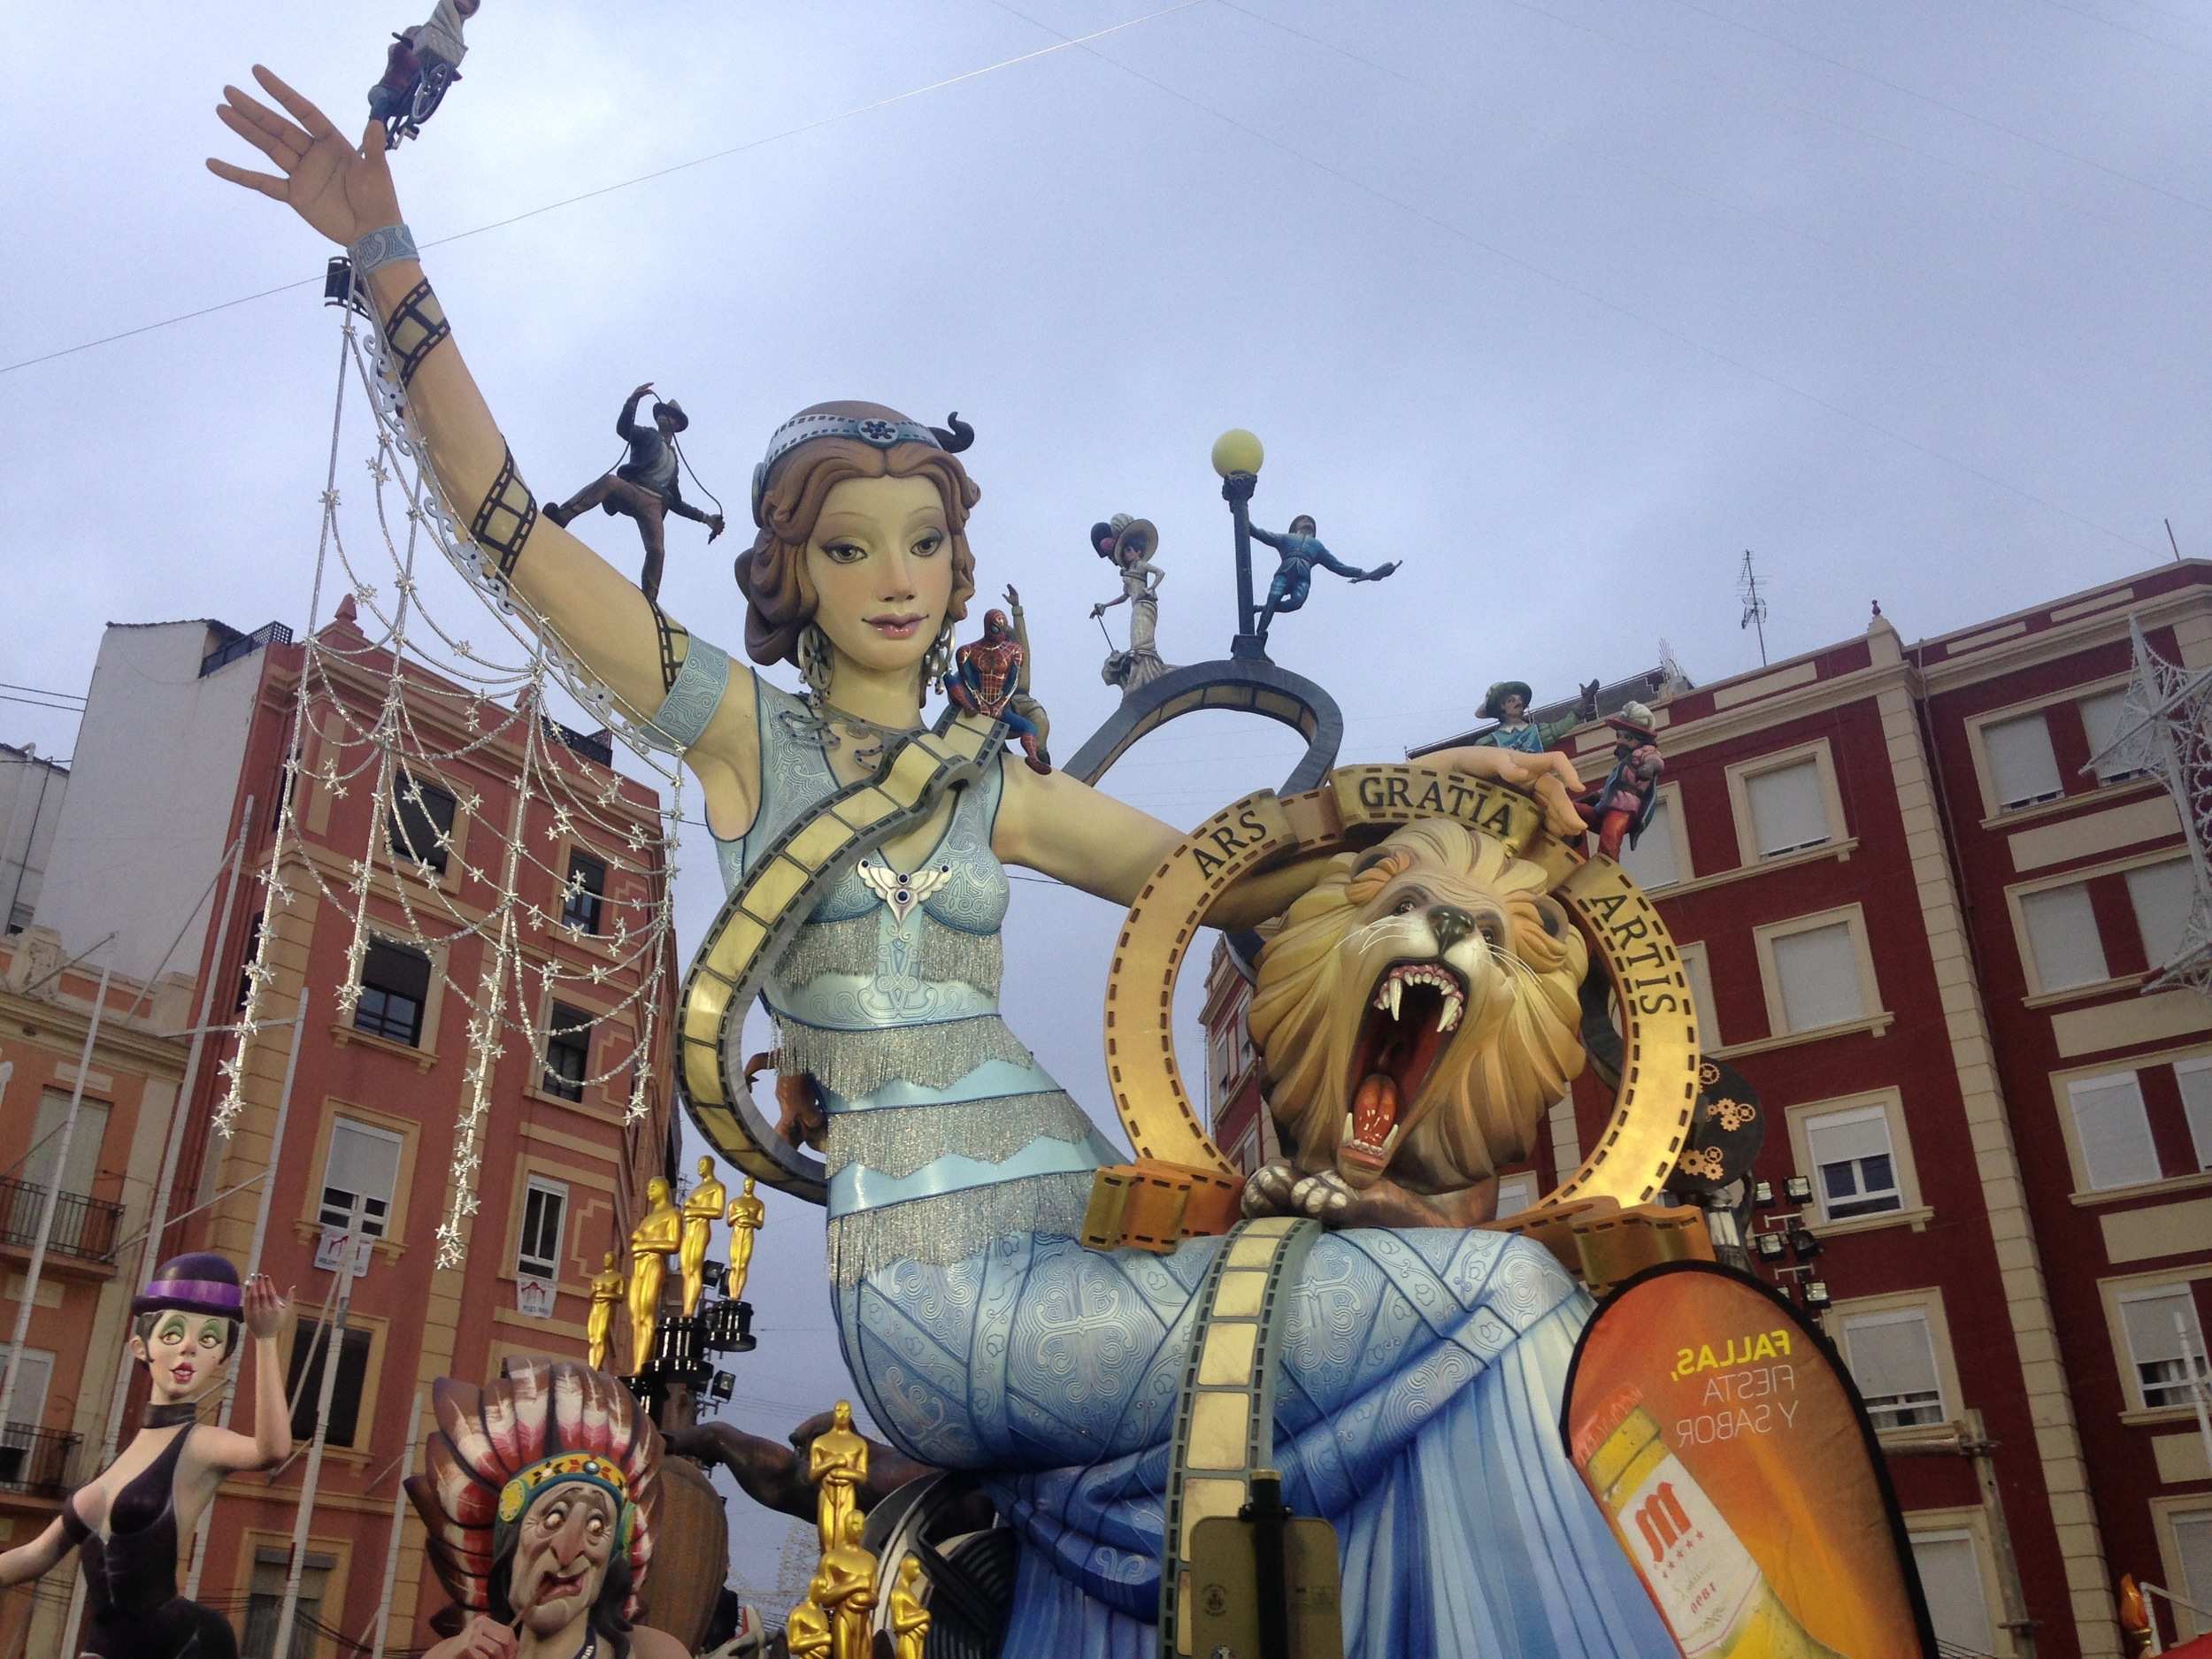 This was an incredible falla that was enormous, intricate,and beautiful, a representation of the movies.